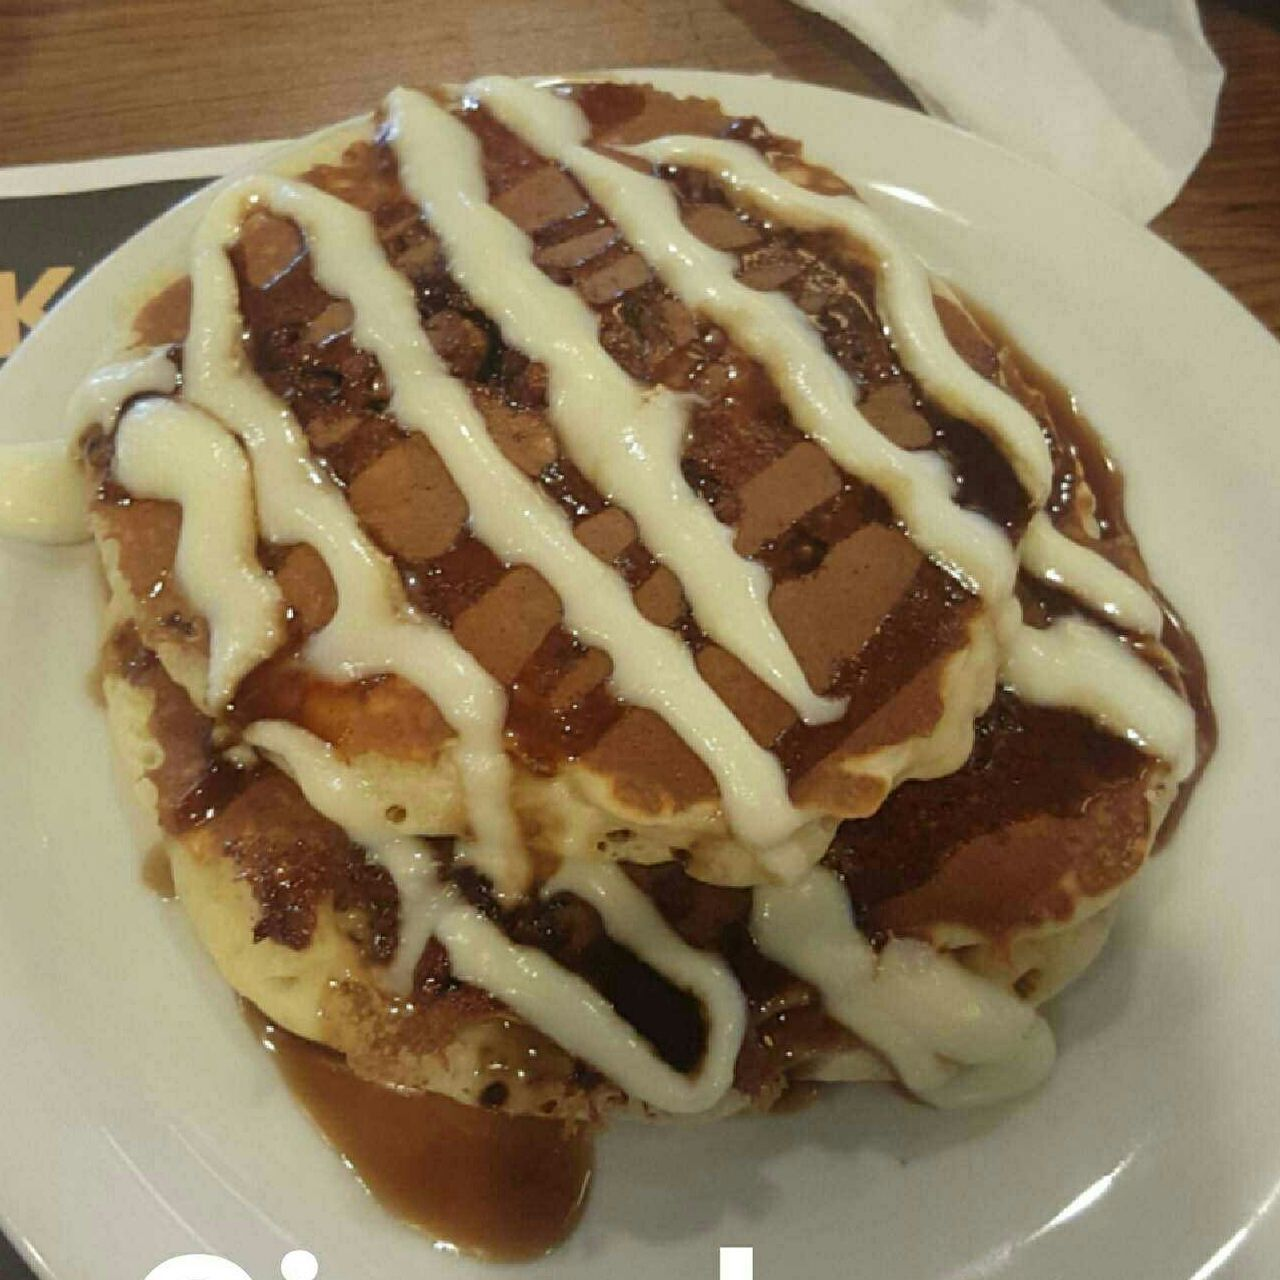 Had some cinnabon pancakes from dennys and they were delicious! Food And Drink Sweet Food Freshness Food Table Indulgence Unhealthy Eating Ready-to-eat Temptation Dessert Food Breakfast Cinnabon Cinnabonpancakes Pancakes Pancake Yummy Frosting